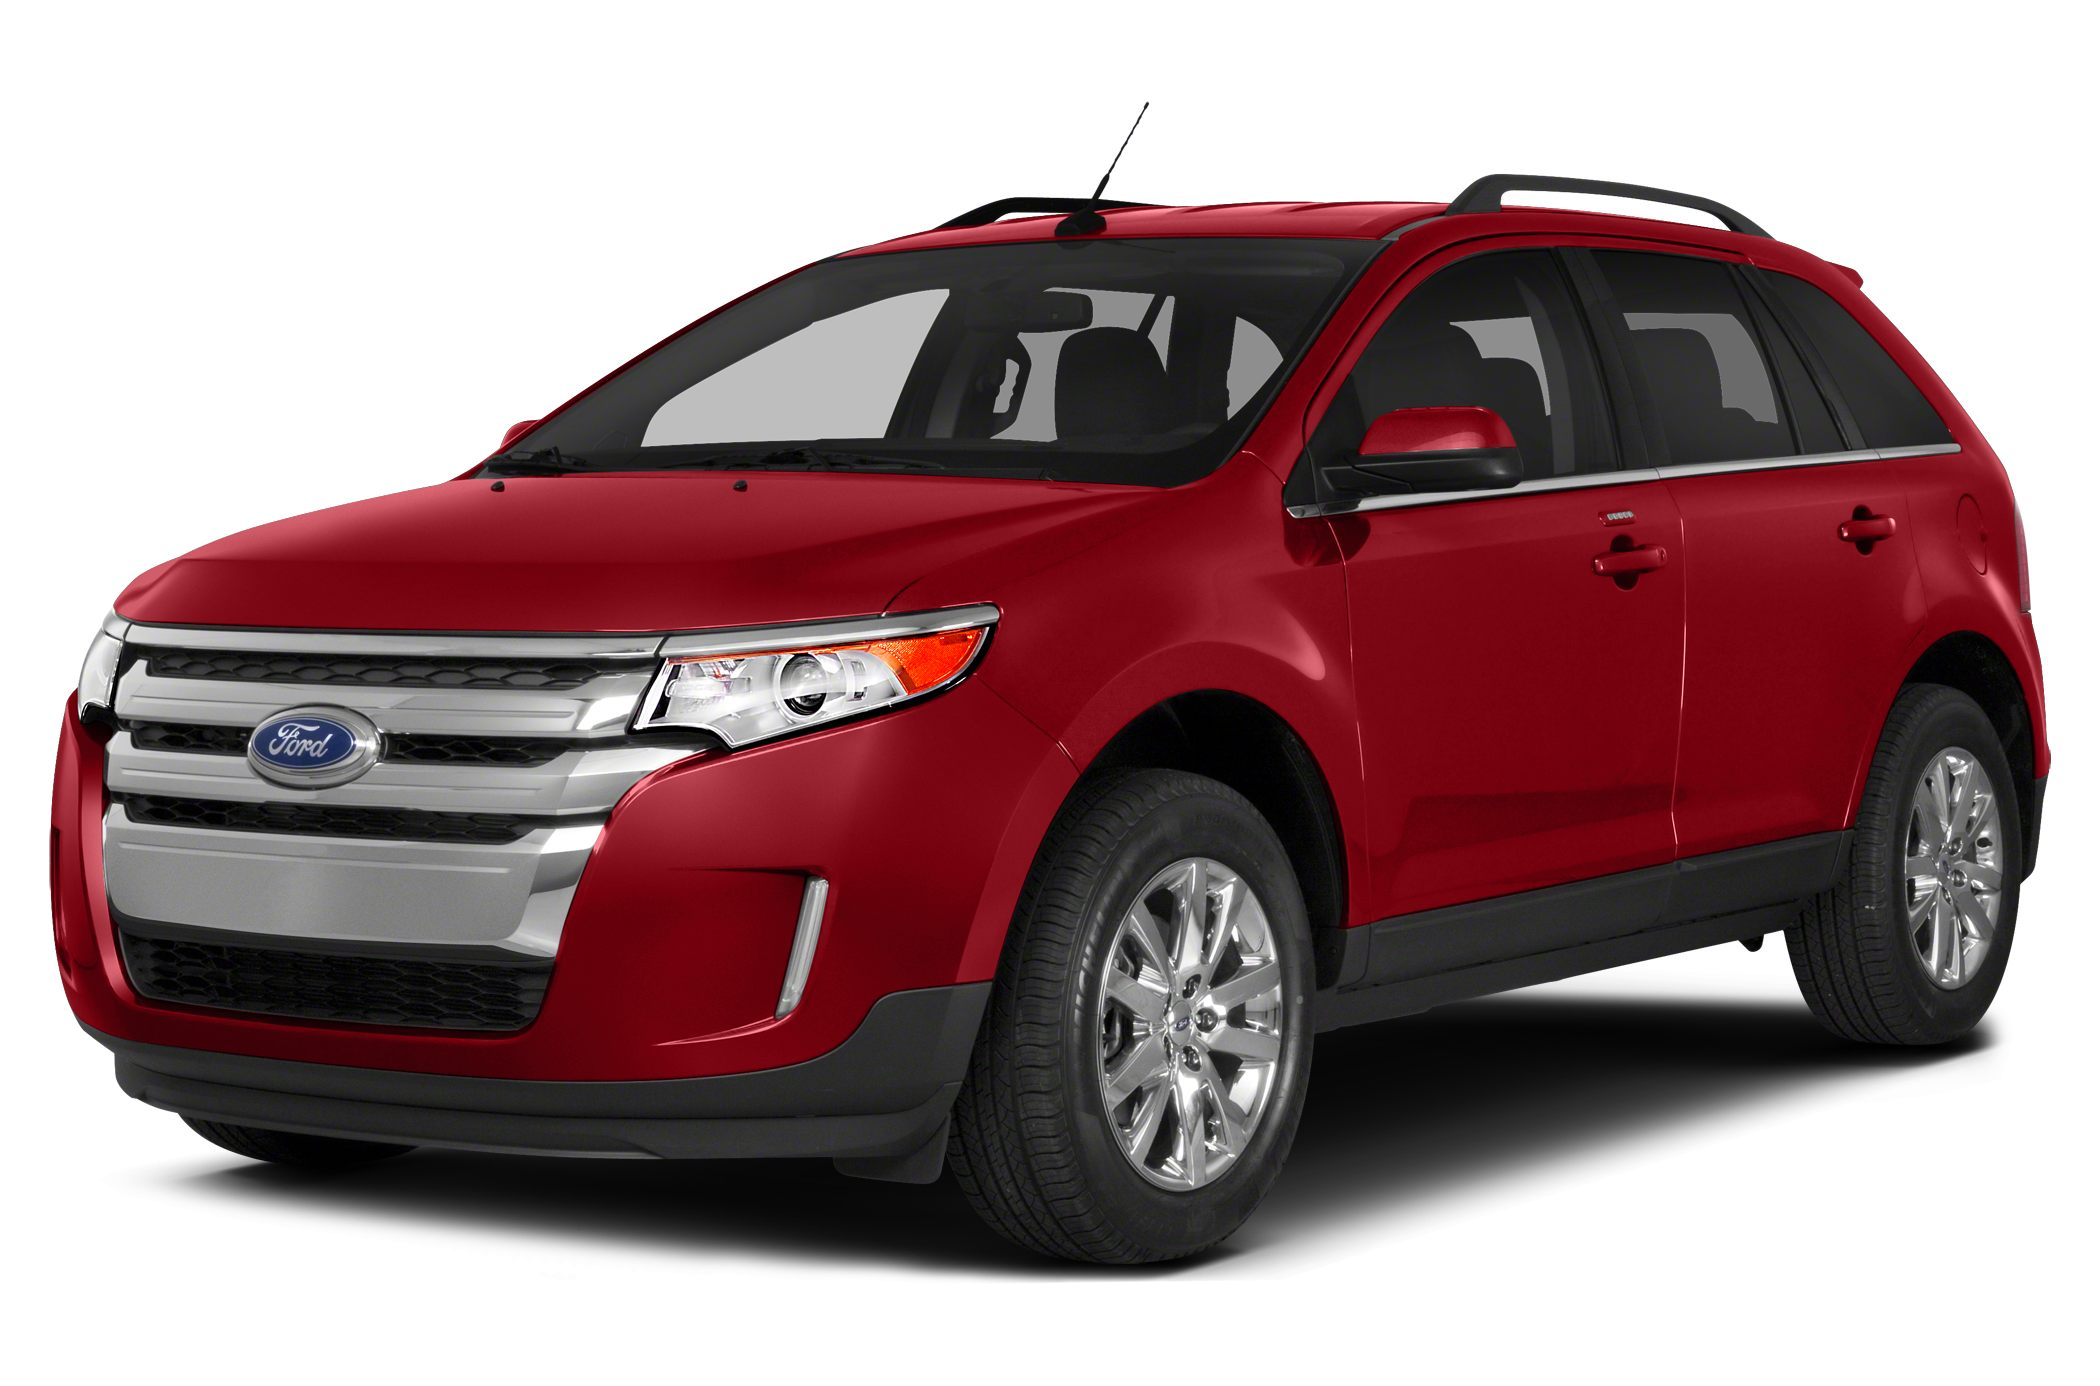 2014 Ford Edge SEL SUV for sale in Bloomer for $35,010 with 0 miles